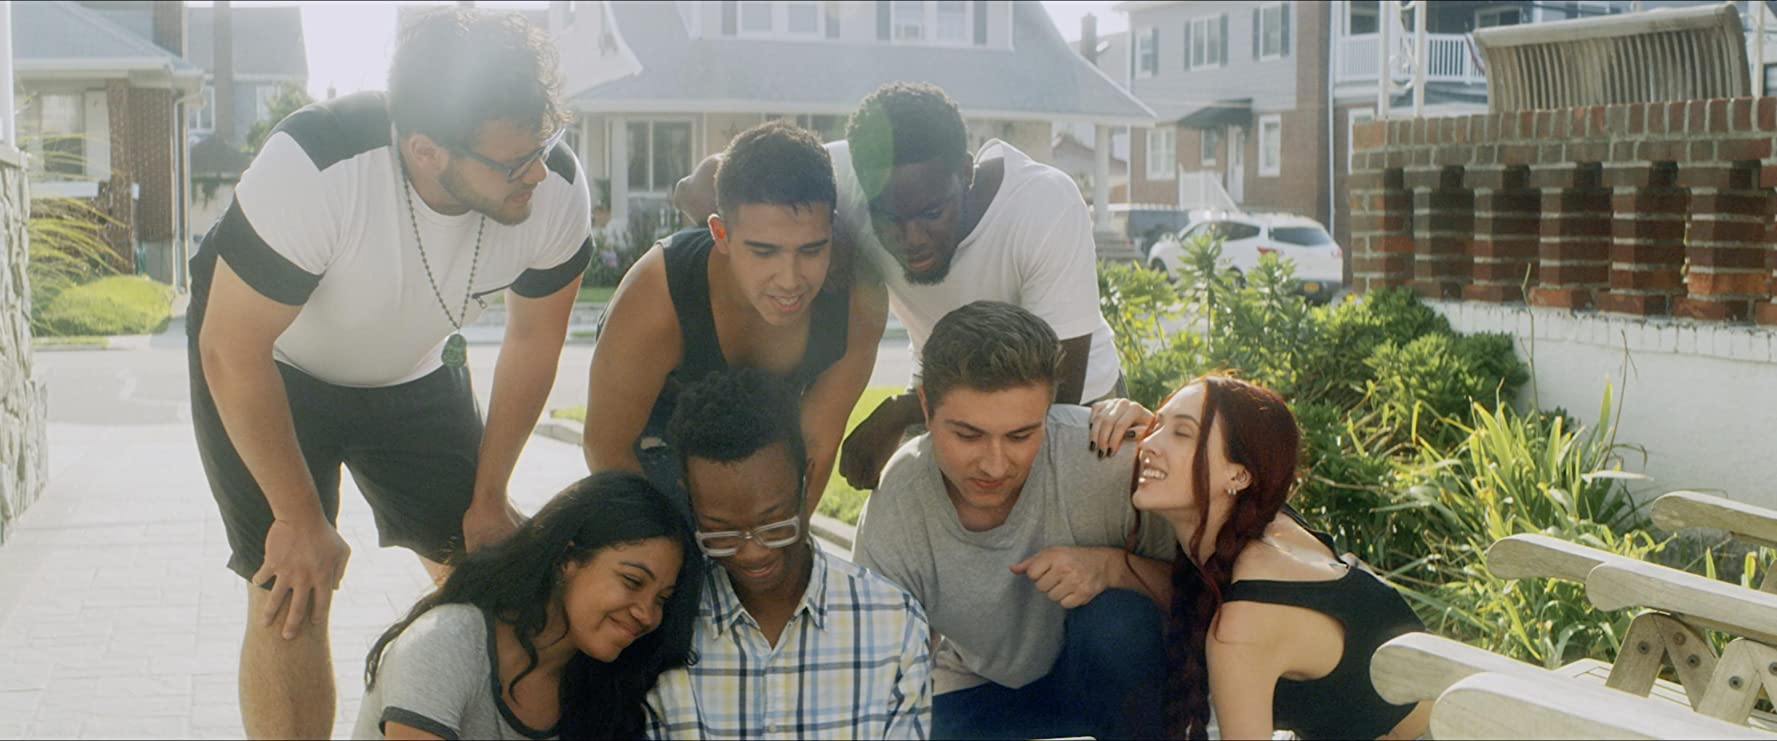 Moses Meads, Silvia Dionicio, Xavier Michael, Phil Blevins, Corynn Treadwell, Kaleal Cerafici, and Cha-tah Ellem in Juvenile Delinquents: New World Order (2020)